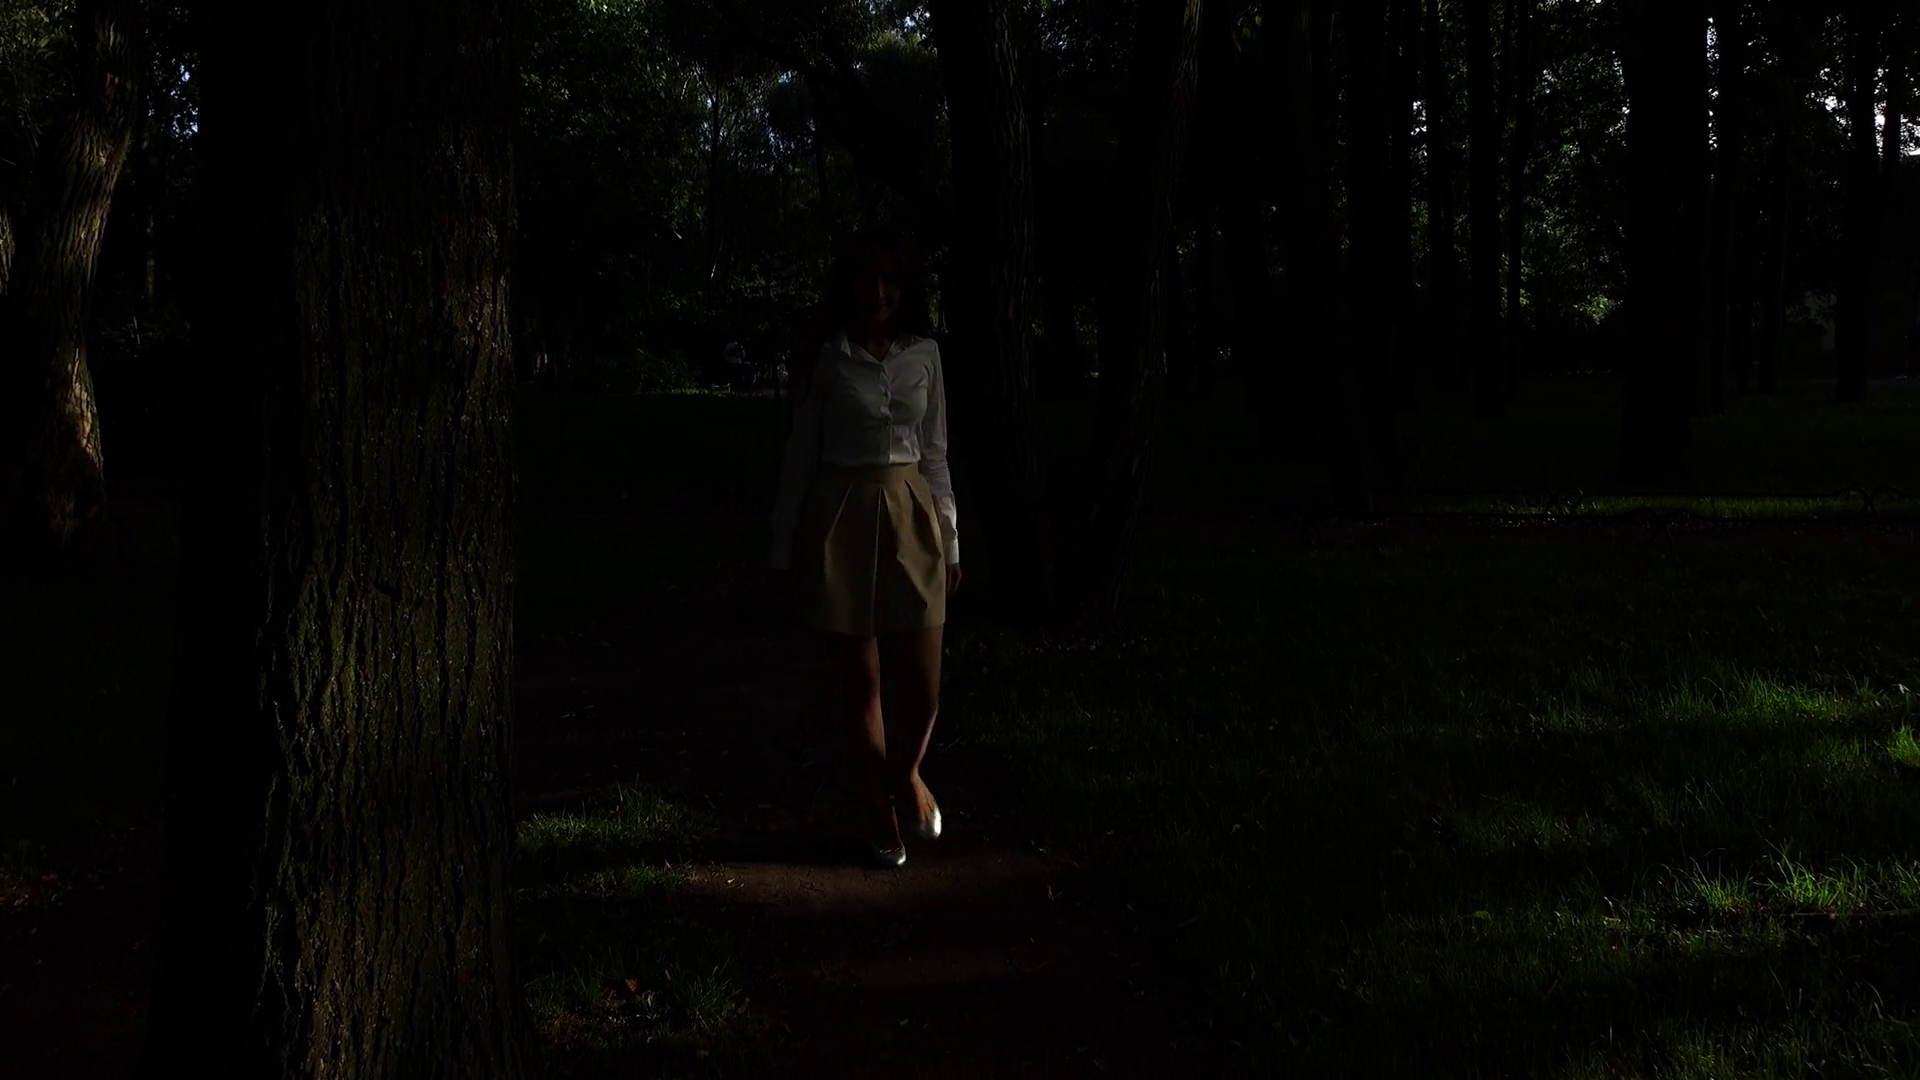 girl-walk-alone-through-dark-forest-tree-trunks-and-black-shadows-on-pathway_siboyu8q_thumbnail-full01